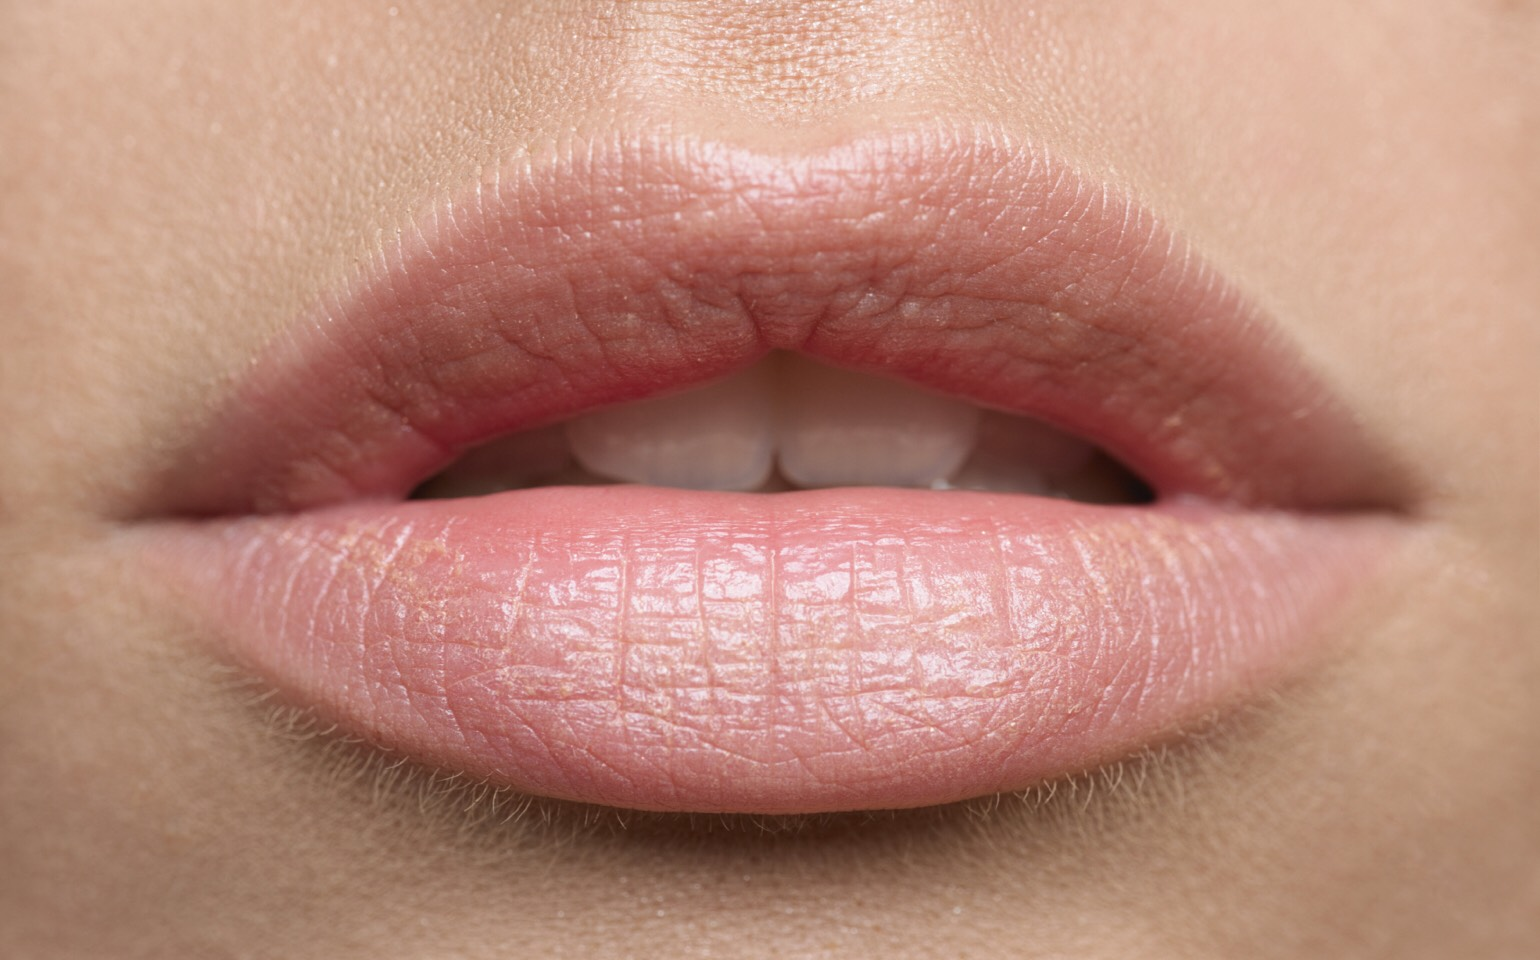 Chapped lips? Use Vaseline instead of Chapstick before bed and get soft lips